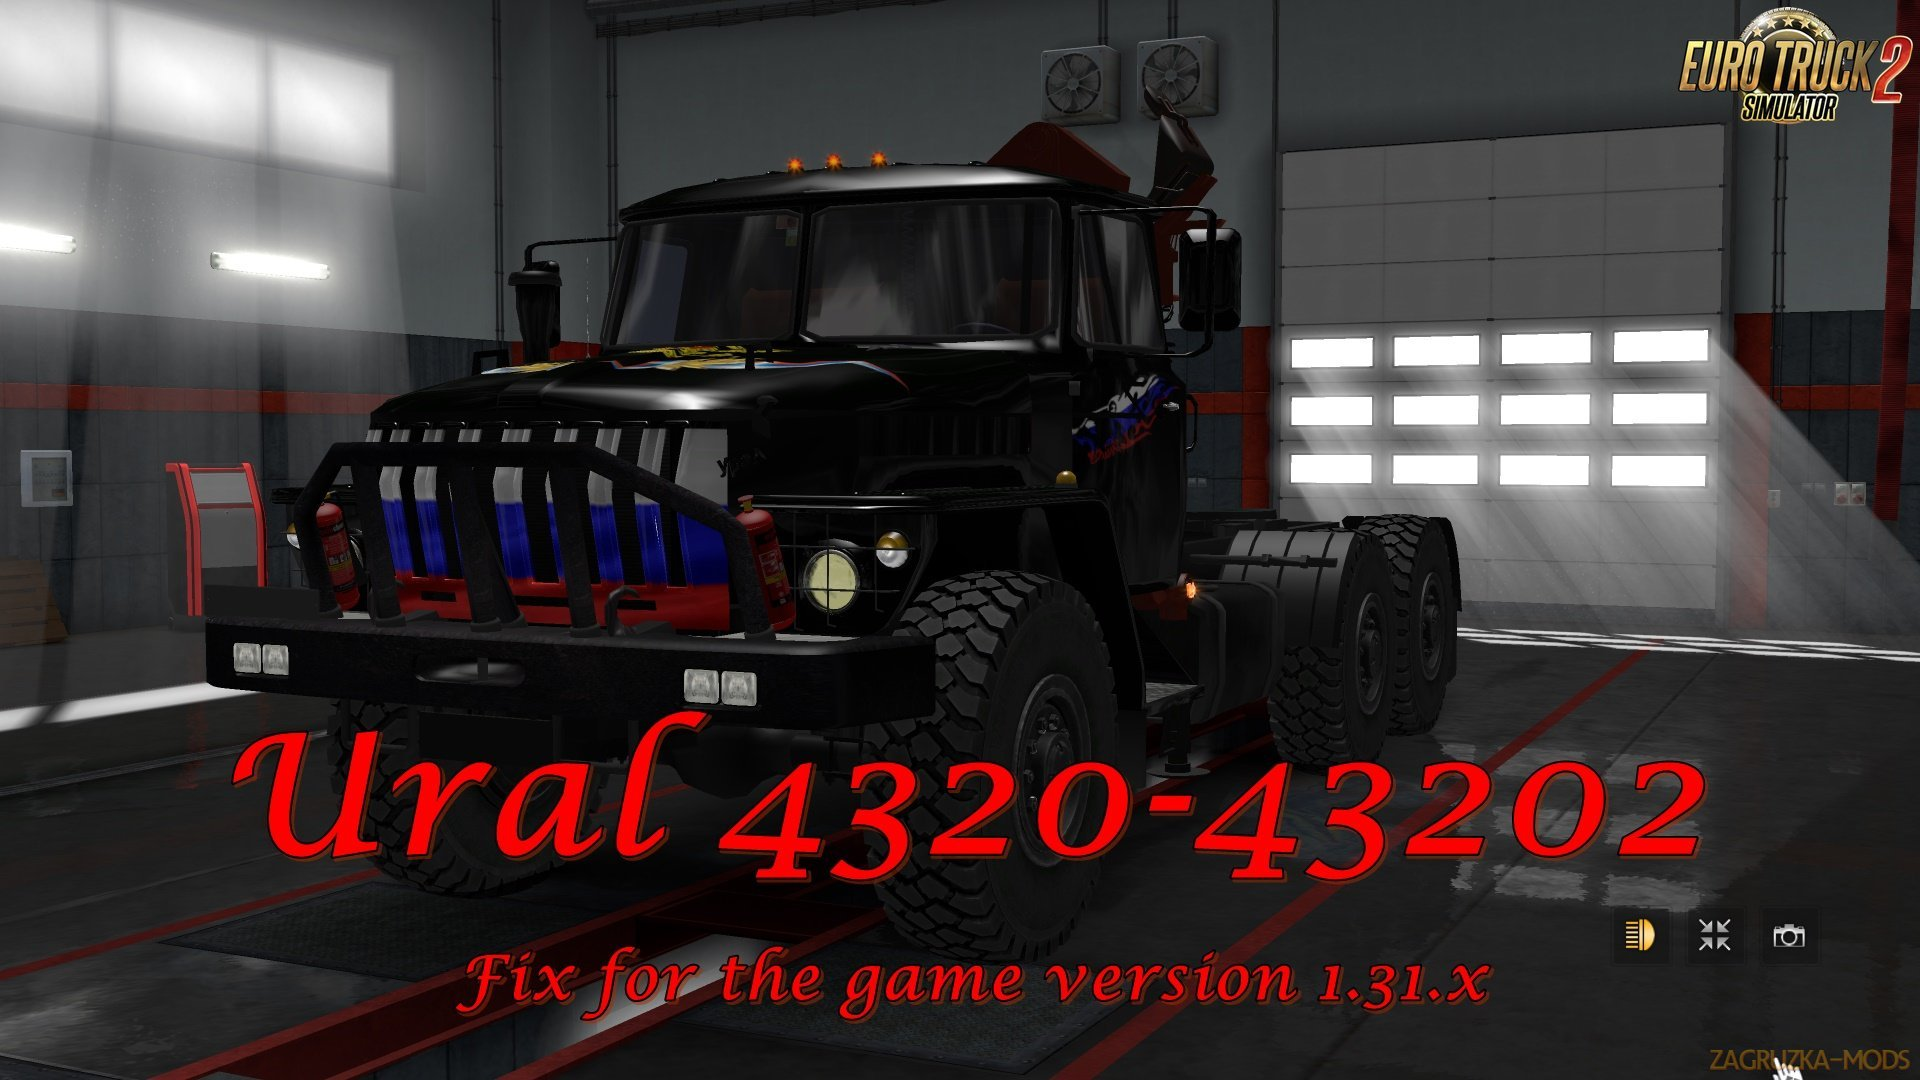 Ural 4320-43202 - Fix for 1.31.x